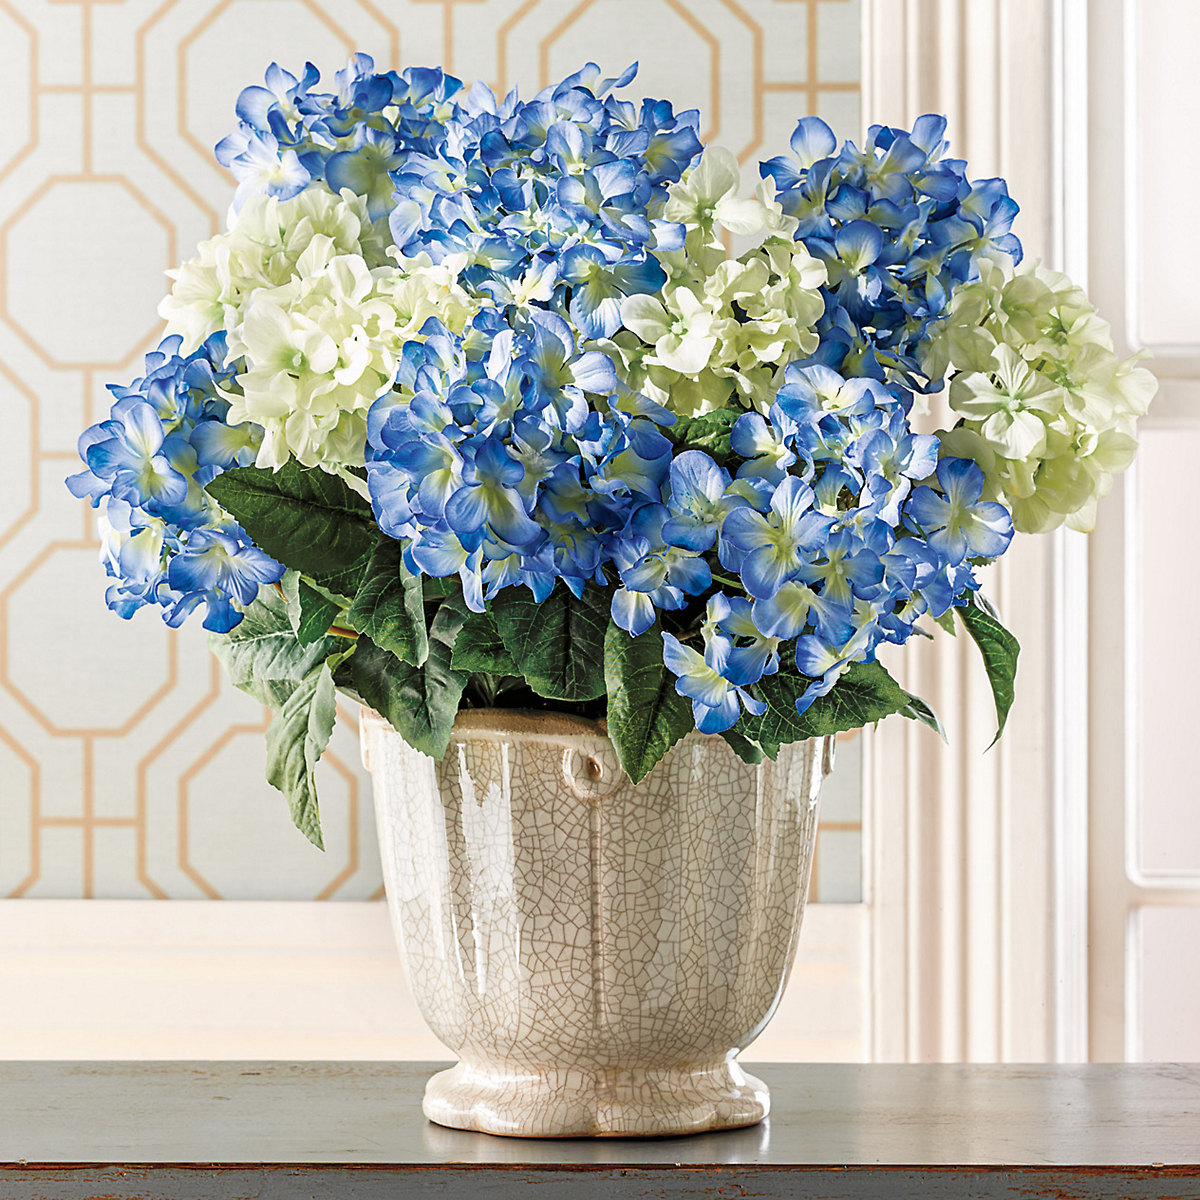 Blue Heirloom Hydrangeas